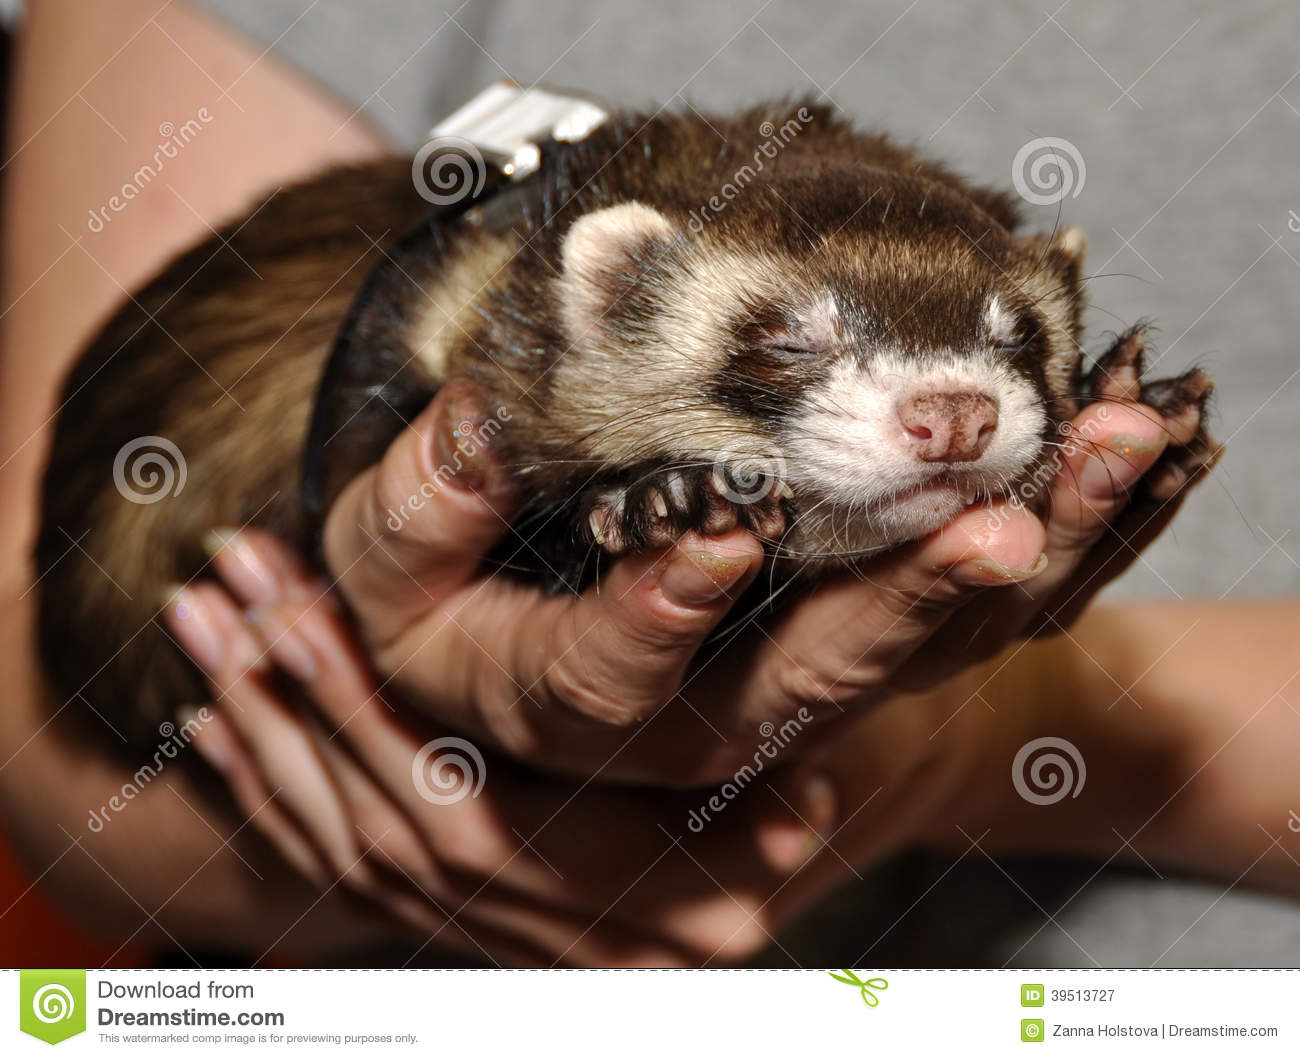 Ferret in a hand